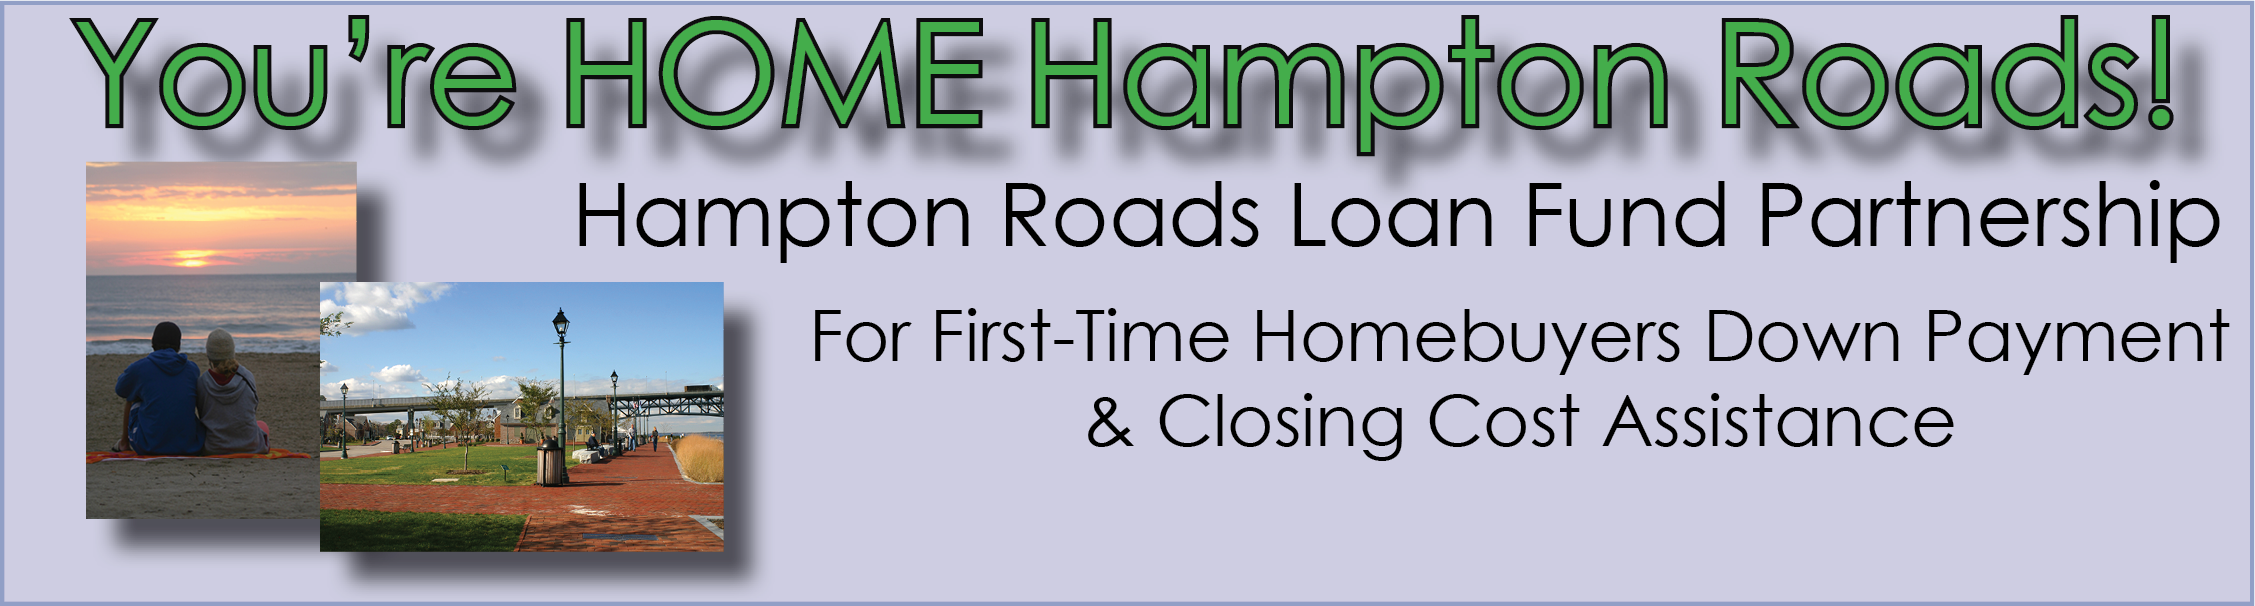 HOME Hampton Roads Banner